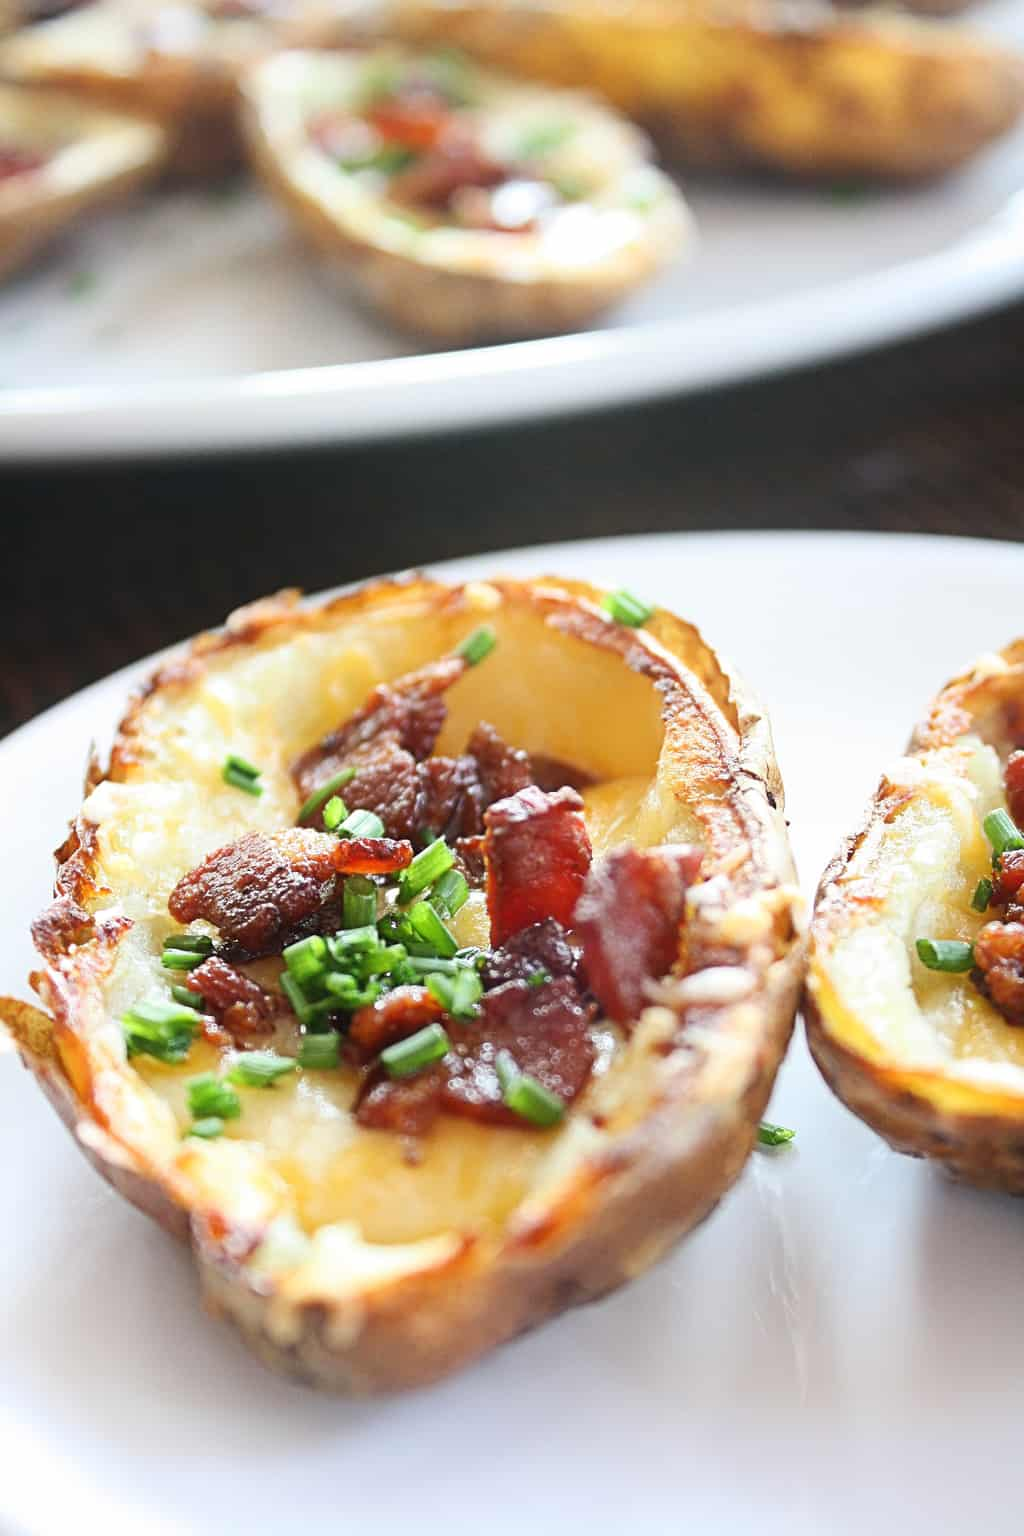 No one likes flabby, flavorless Baked Potato Skins. This recipe turns out crispy, flavorful loaded baked potato skins that you'll love!